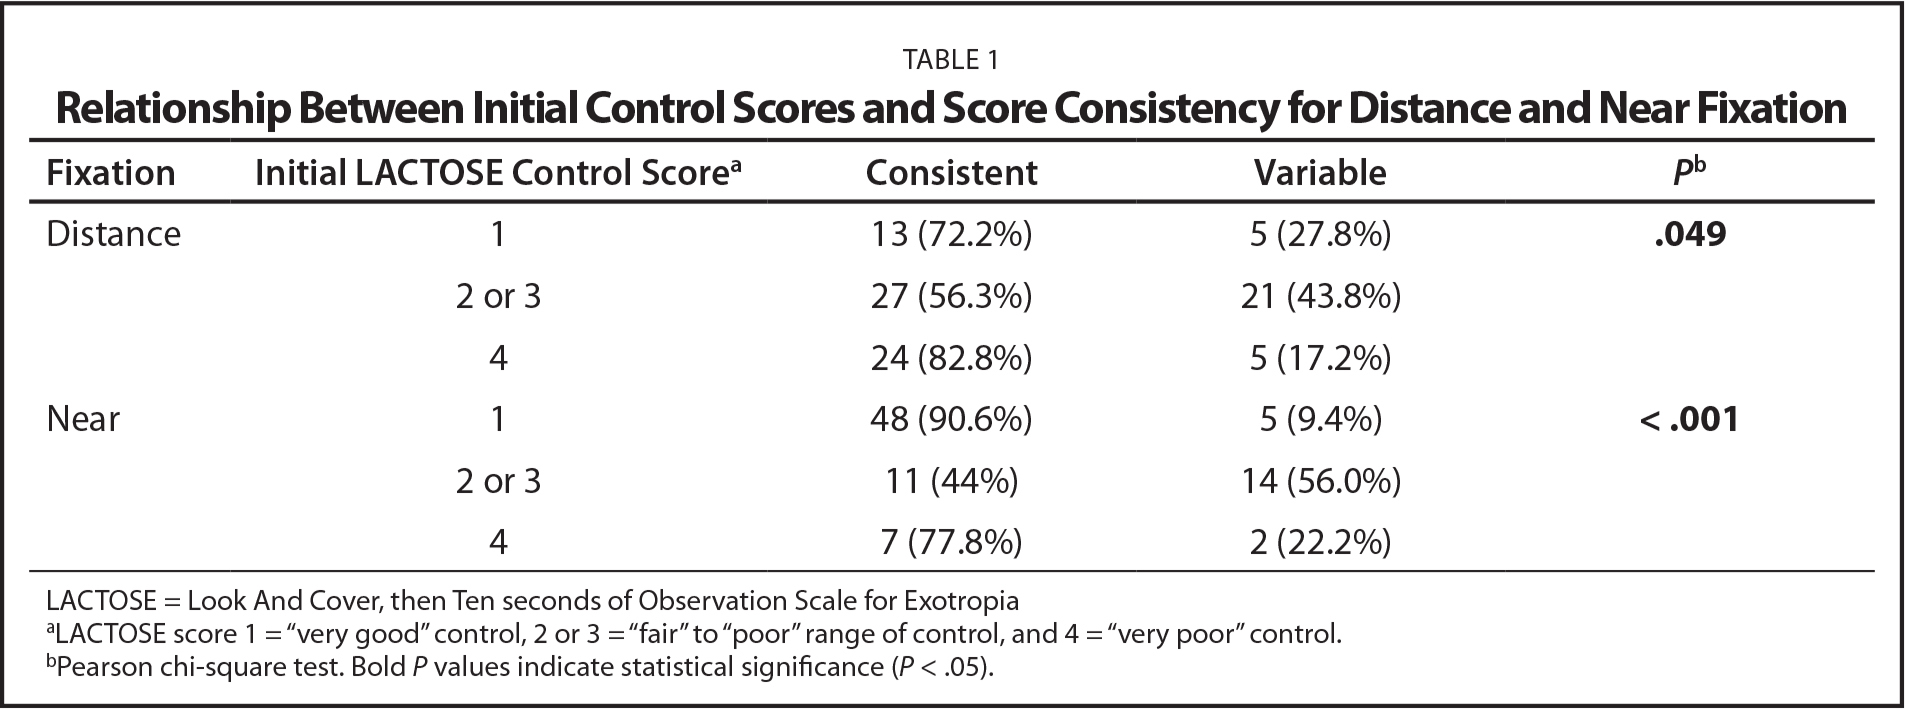 Relationship Between Initial Control Scores and Score Consistency for Distance and Near Fixation